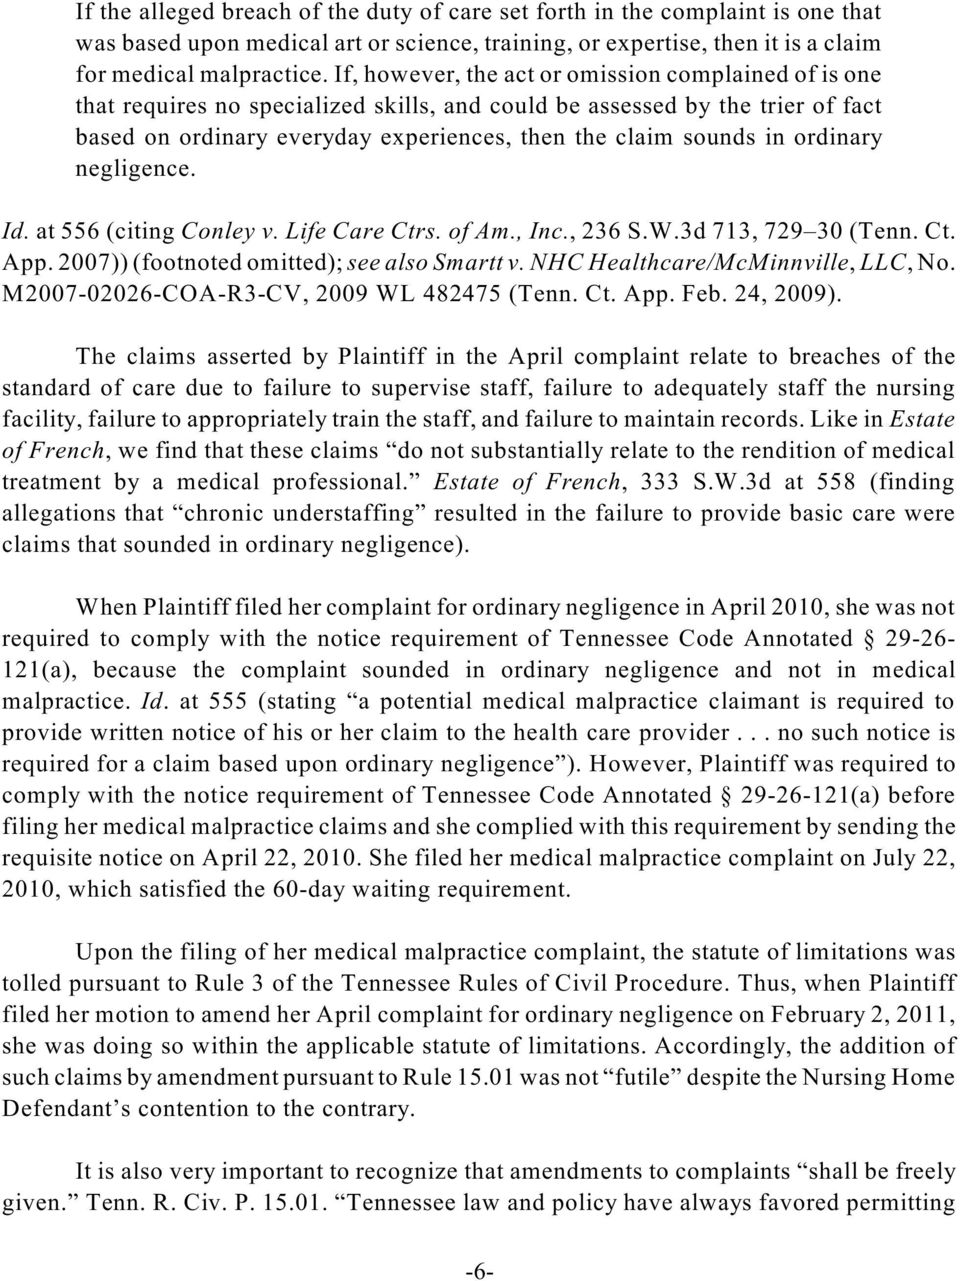 ordinary negligence. Id. at 556 (citing Conley v. Life Care Ctrs. of Am., Inc., 236 S.W.3d 713, 729 30 (Tenn. Ct. App. 2007)) (footnoted omitted); see also Smartt v.